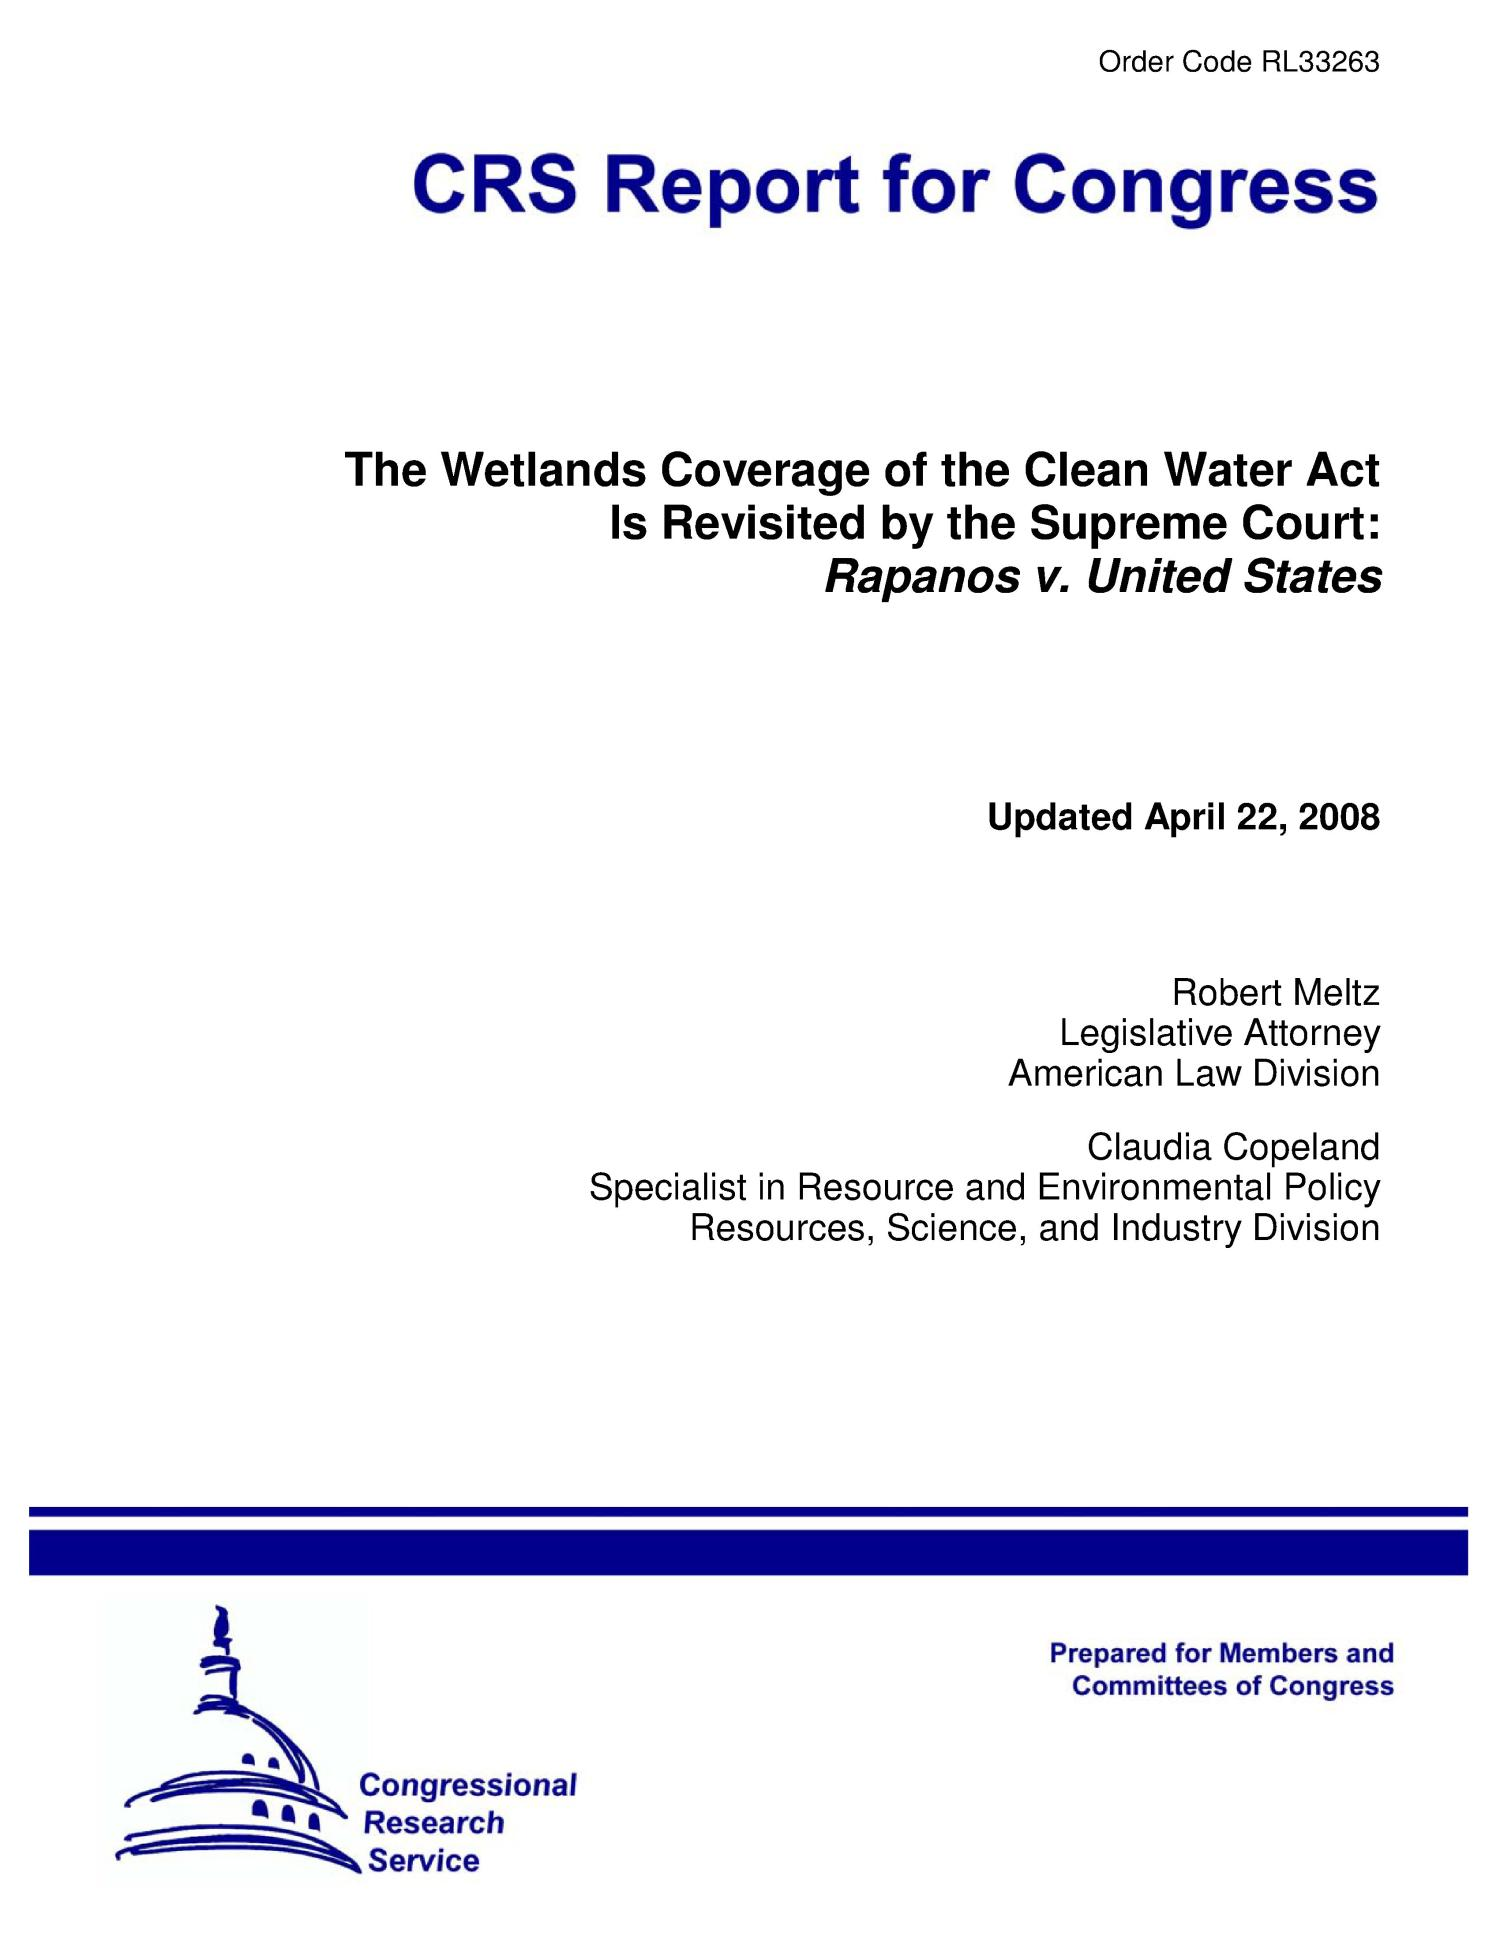 The Wetlands Coverage of the Clean Water Act Is Revisited by the Supreme Court: Rapanos v. United States                                                                                                      [Sequence #]: 1 of 22